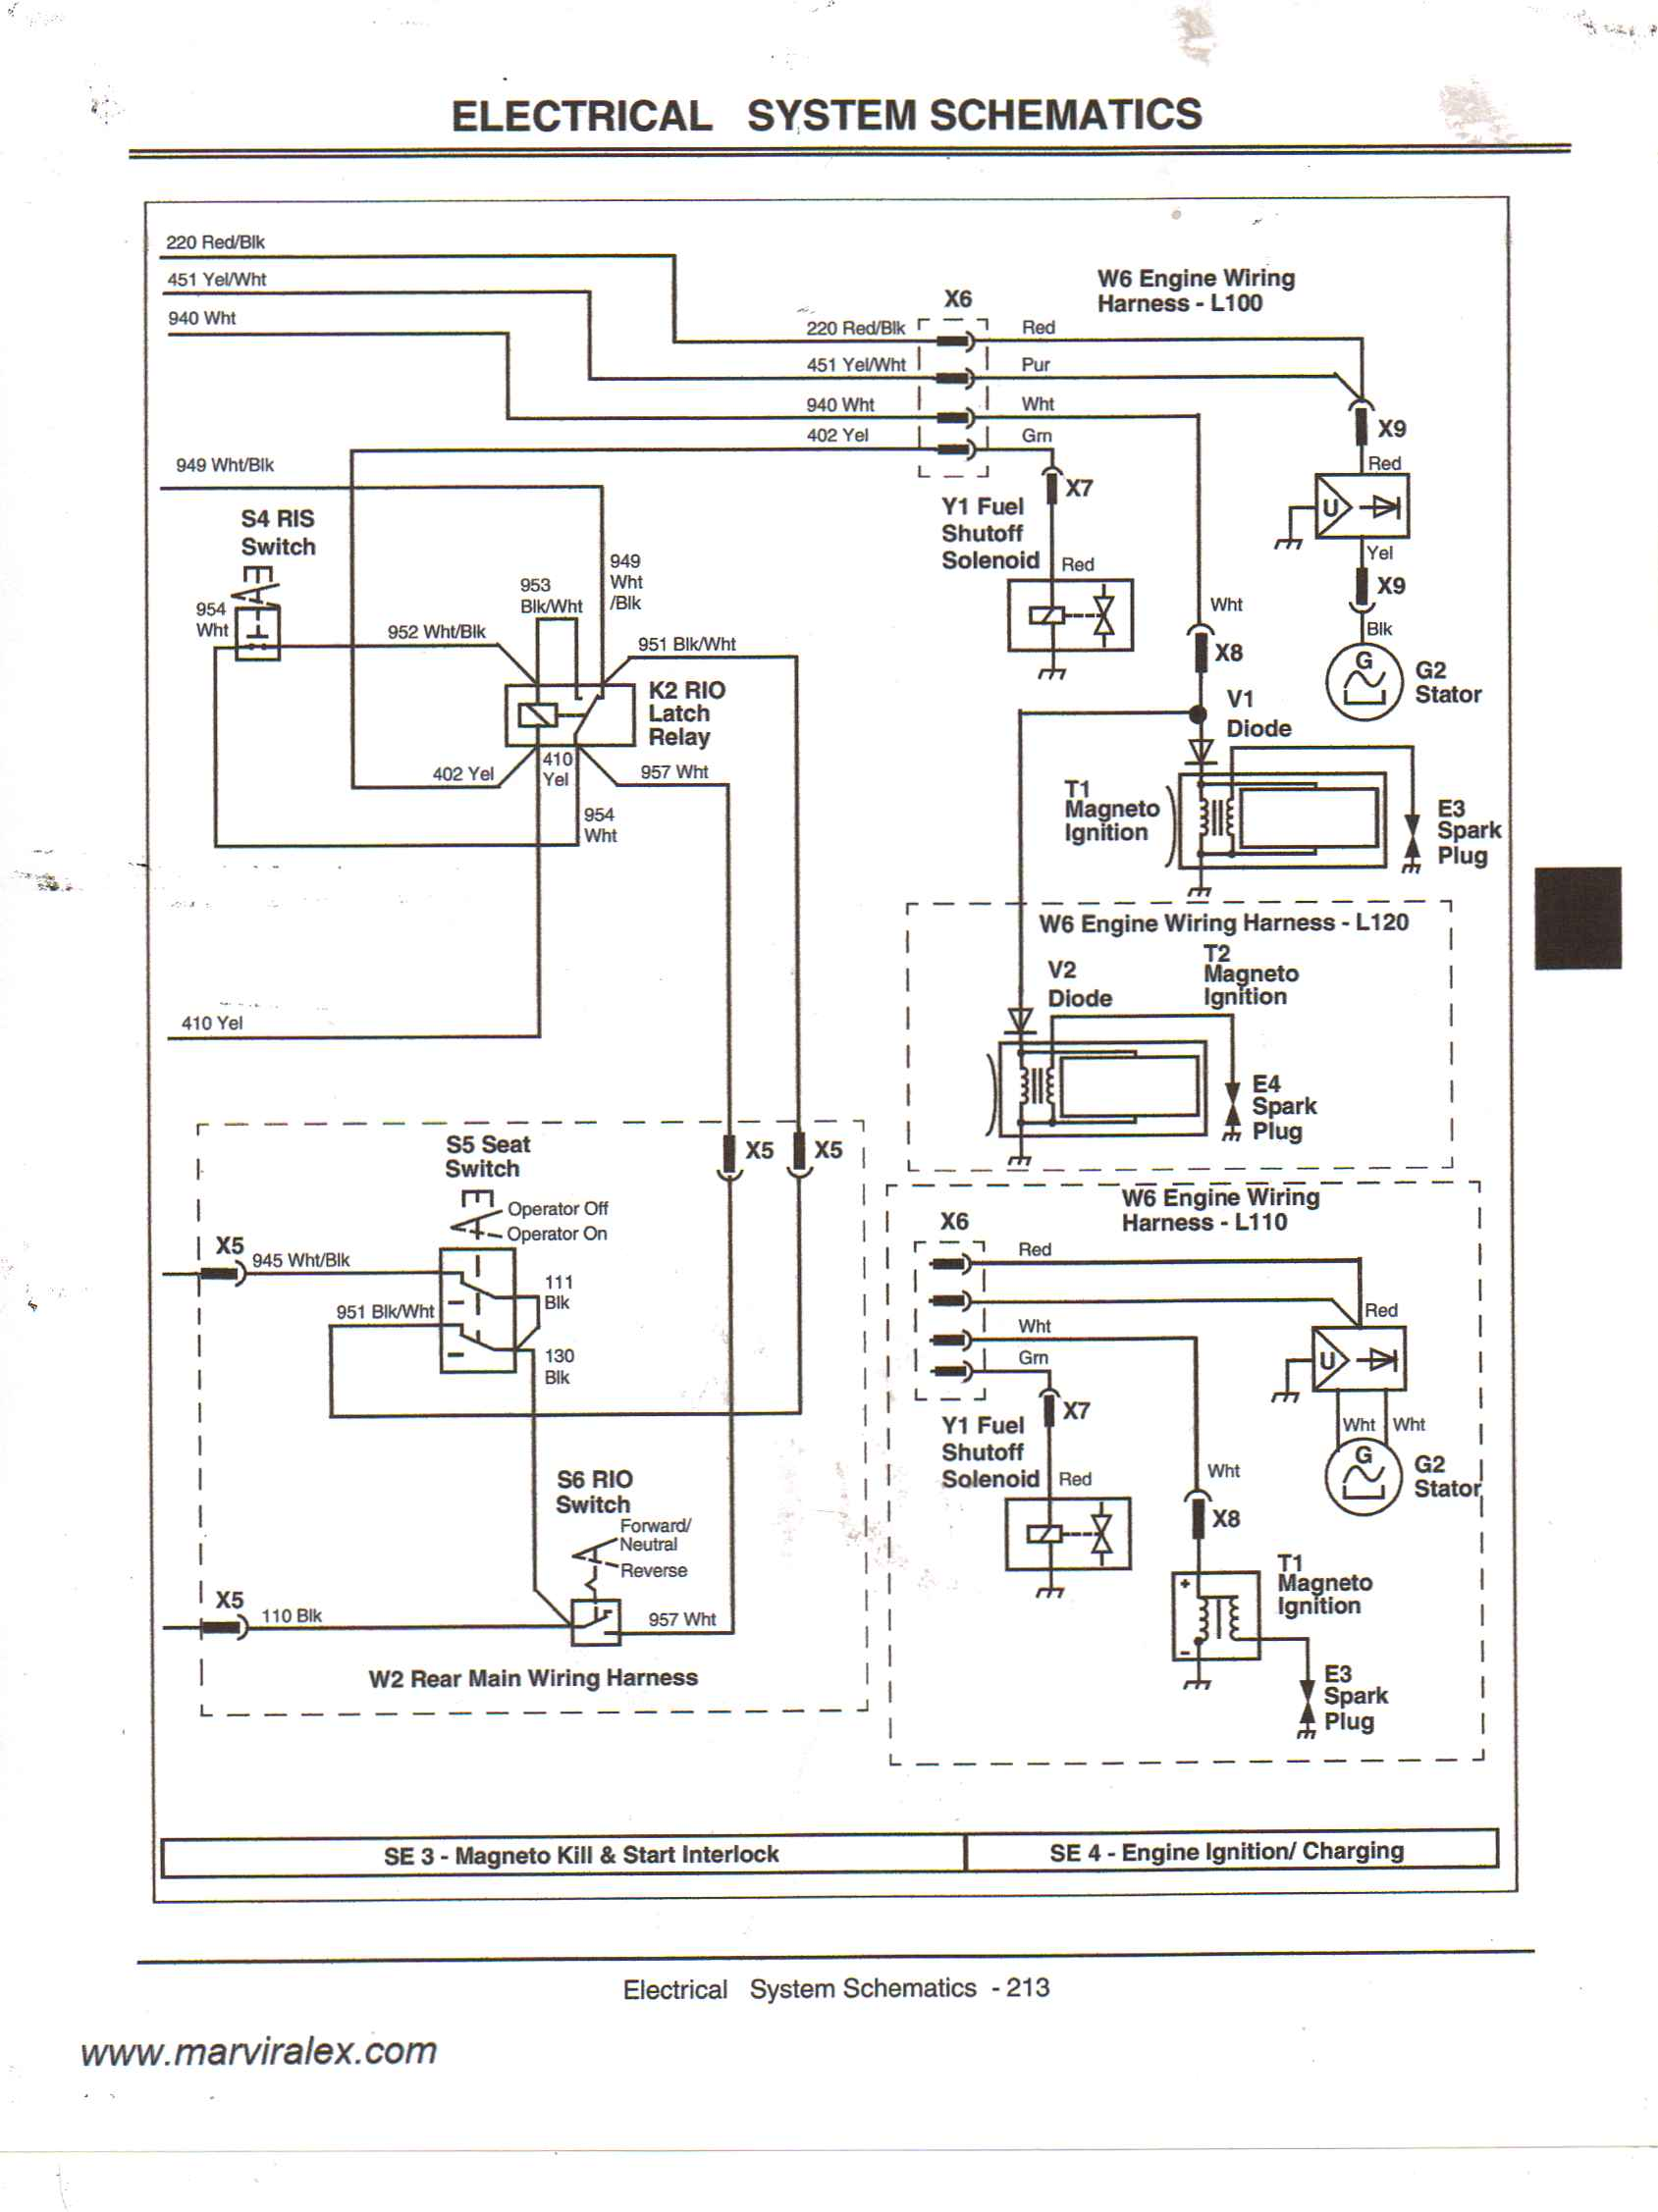 Chevy 305 Distributor Firing Order as well John Deere Lawn Tractor Wiring Diagram furthermore Kawasaki Bayou 300 Wiring Diagram furthermore John Deere Gator Wiring Diagram as well Audi A4 Wiring Diagram. on l120 wiring diagram